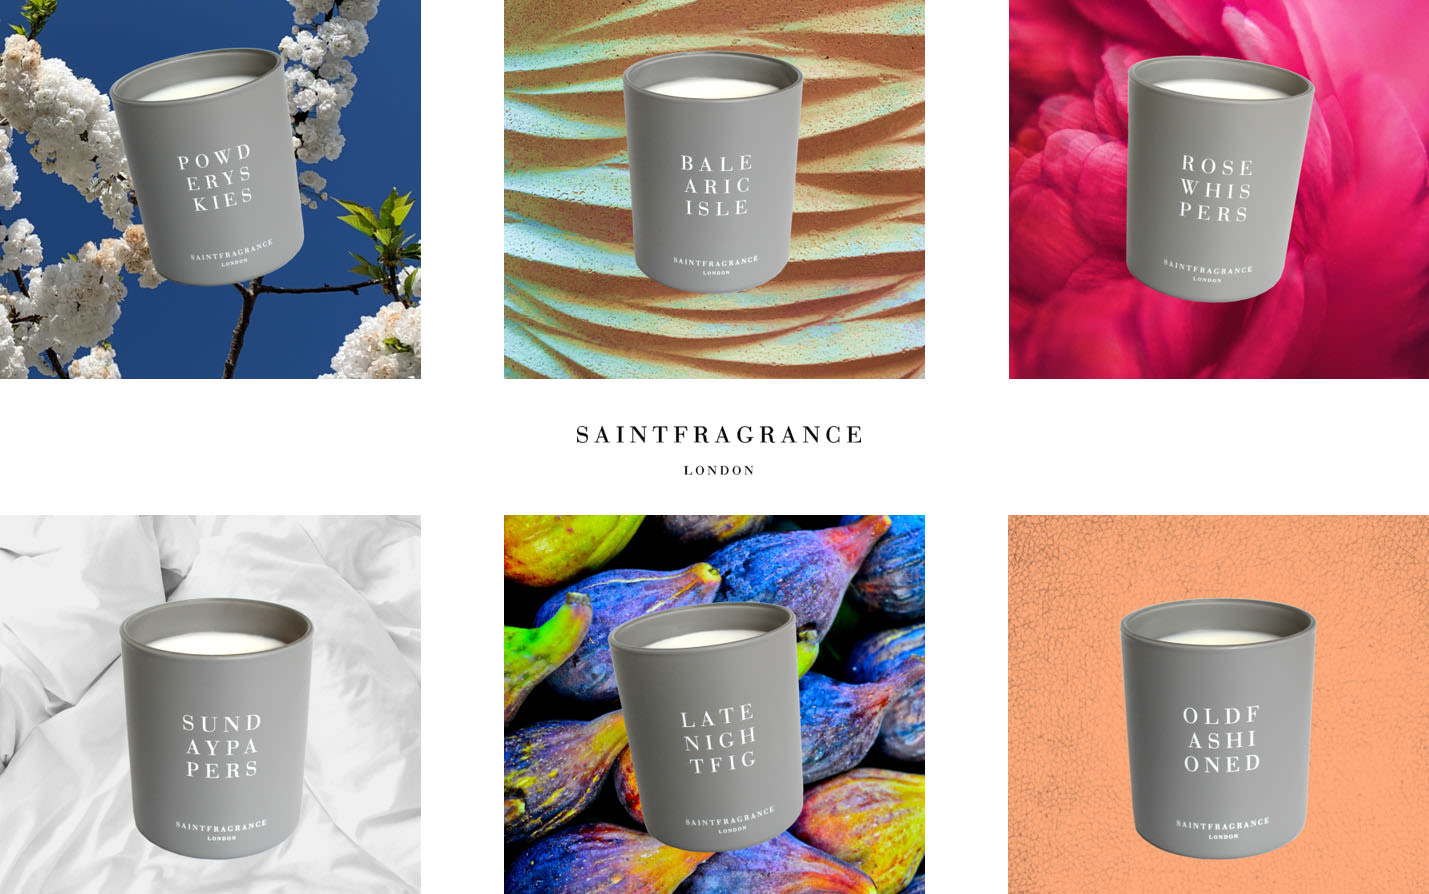 Six Saint Fragrance candles